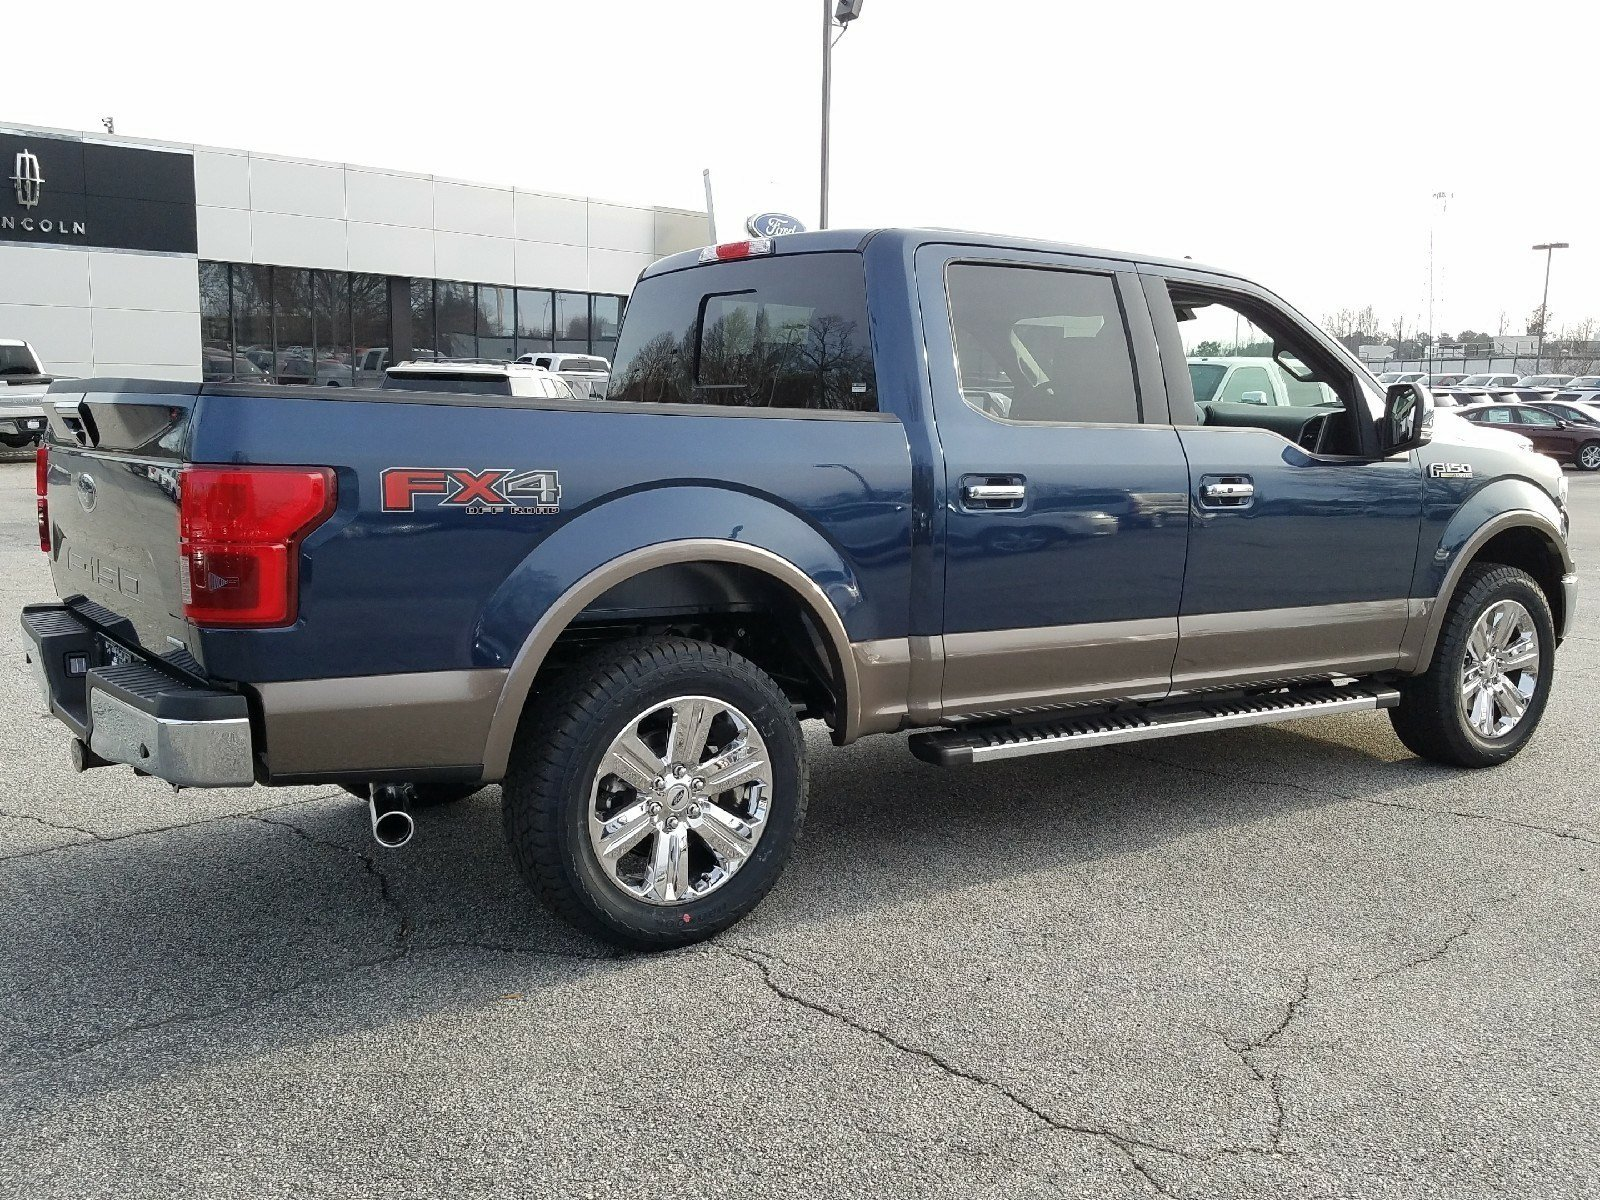 2018 Blue Jeans Ford F-150 Lariat 4 Door Truck 3.5L EcoBoost V6 engine with Auto Start/Stop Technology 4X4